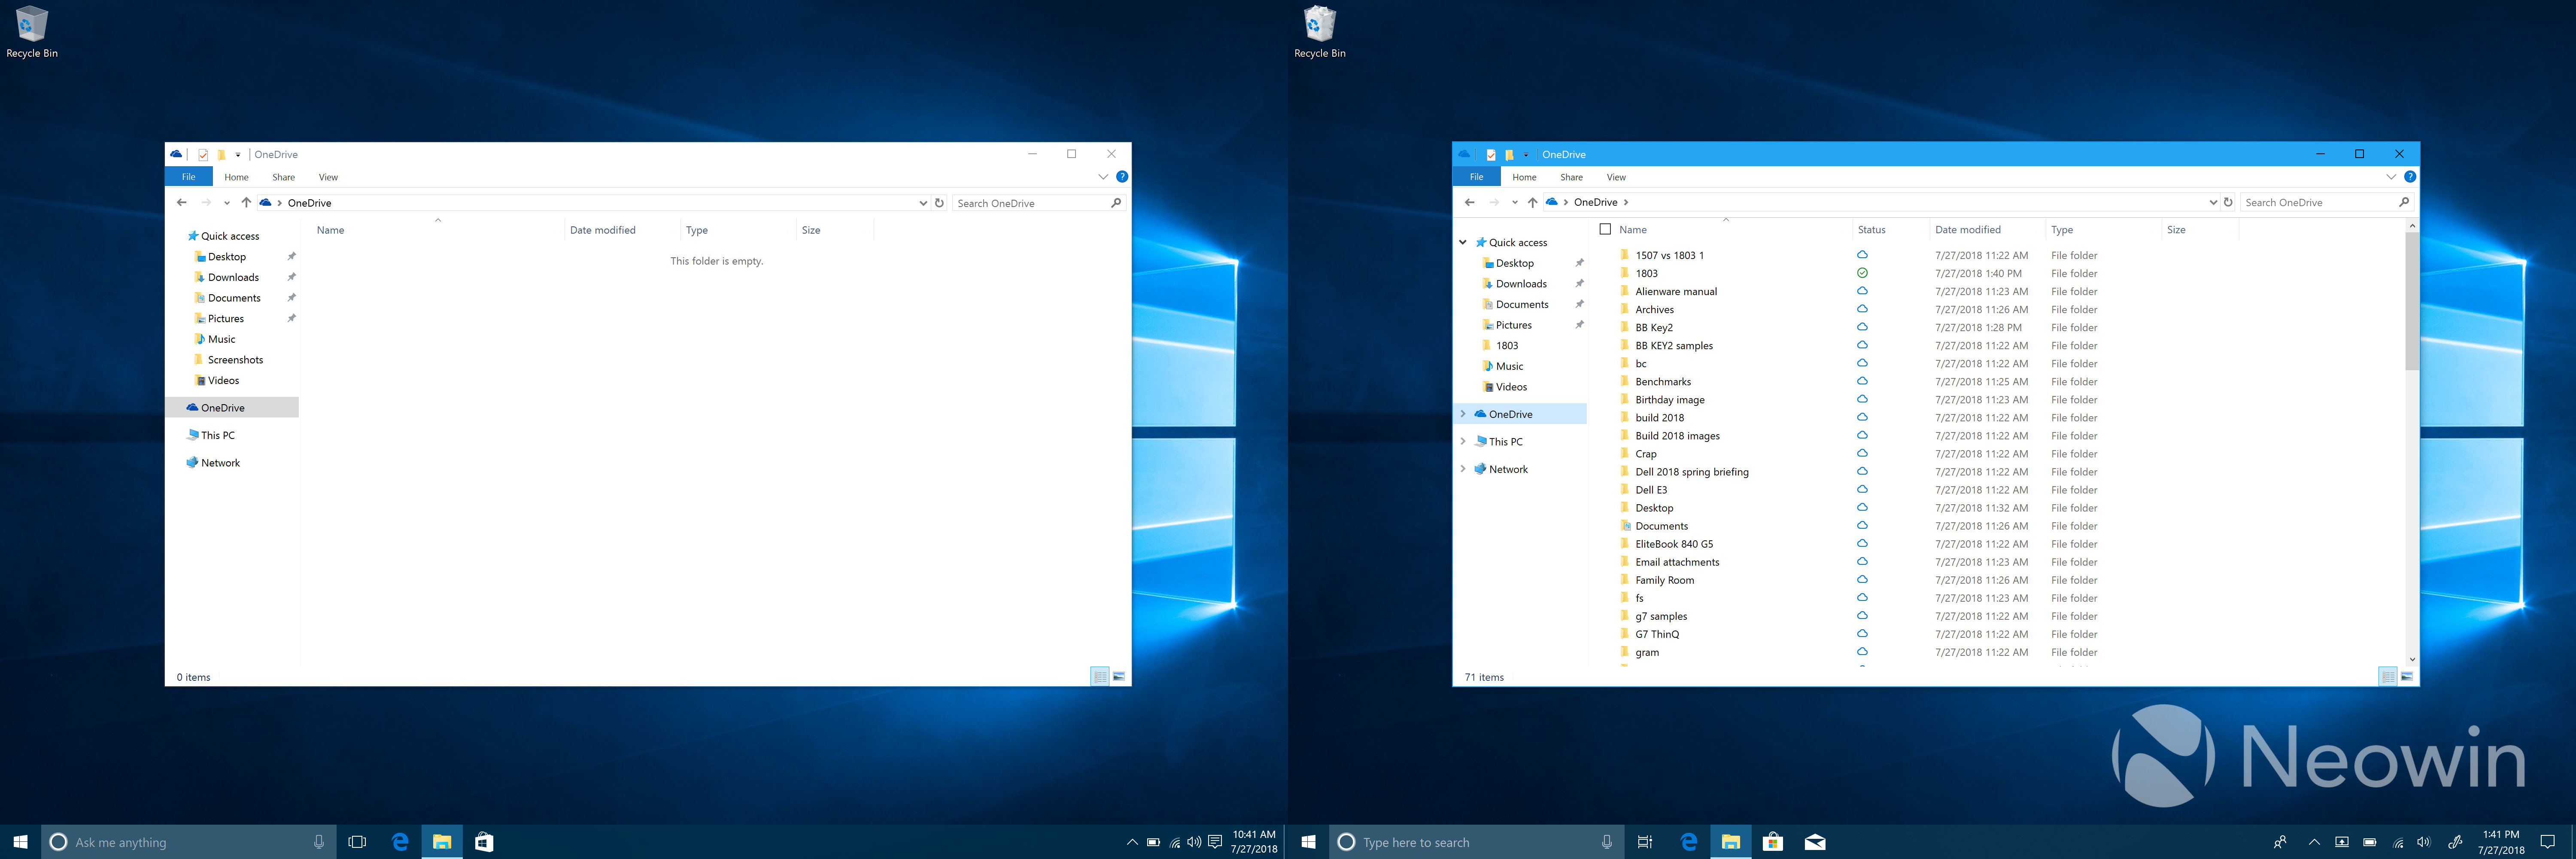 Windows 10 turns three years old today: Here's how it's evolved - Neowin